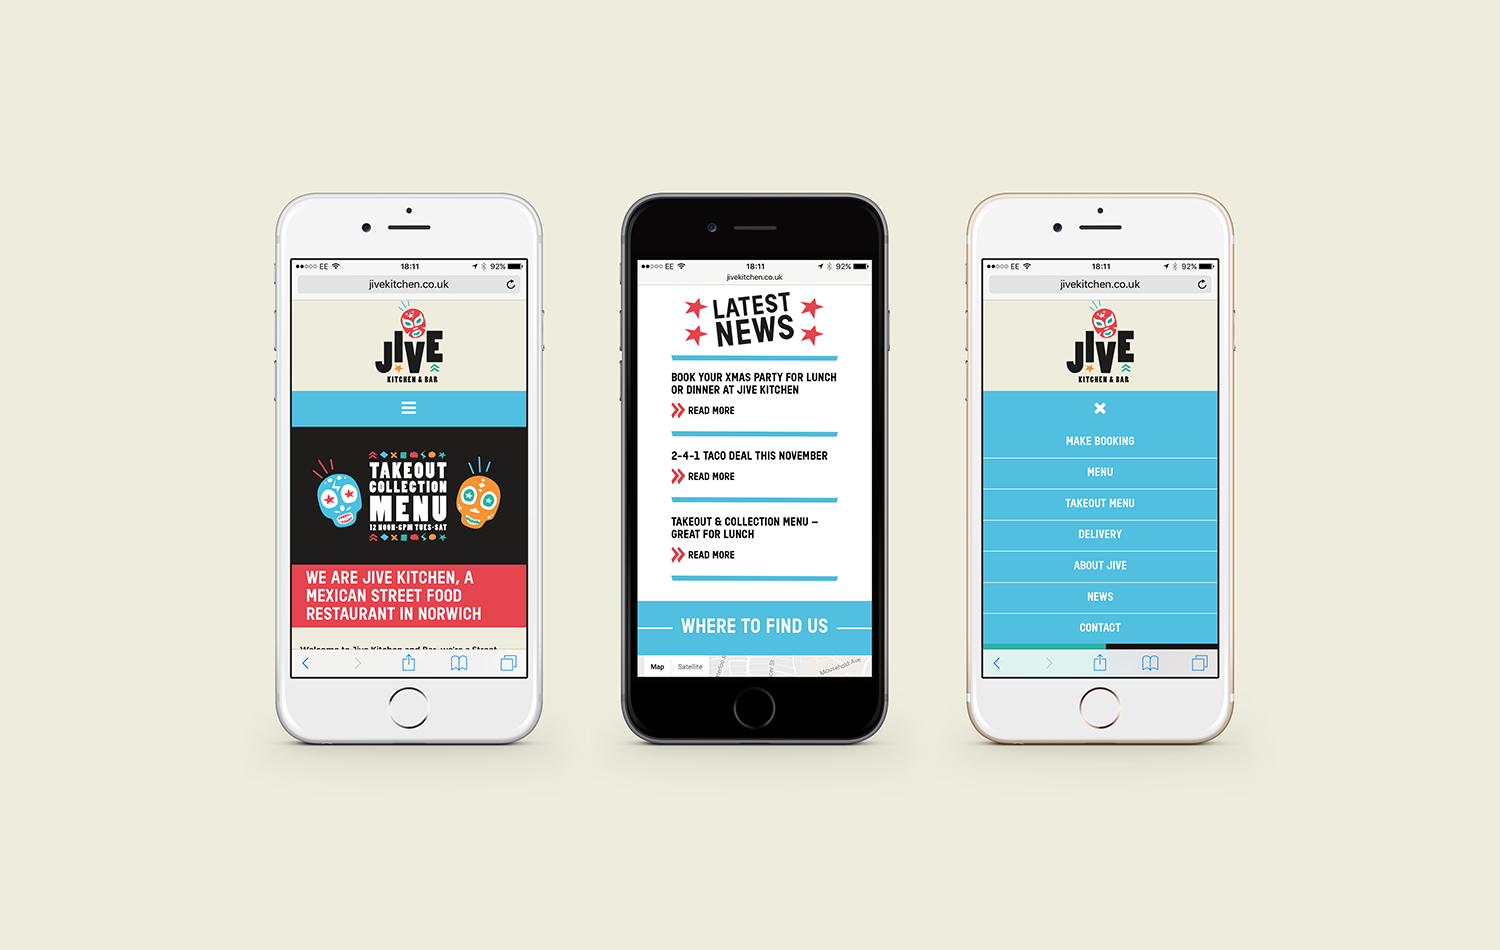 jive-kitchen-norwich-web-design-iphone-mobile.png